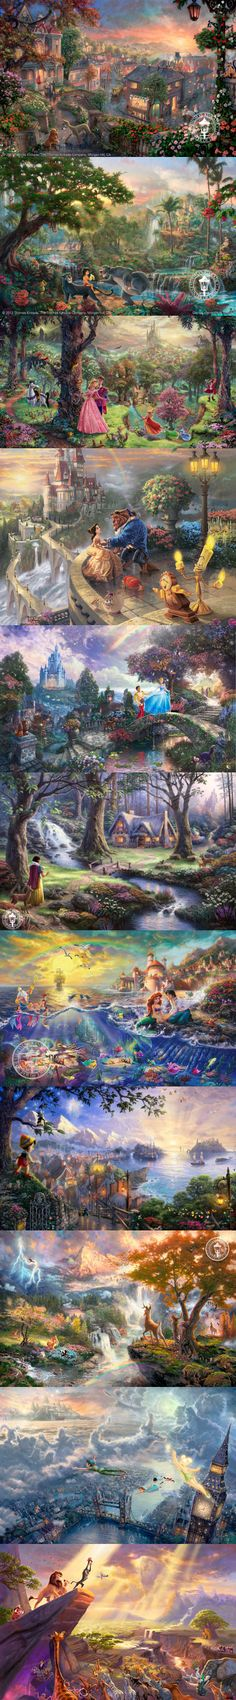 Thomas Kinkade's Disney Landscapes